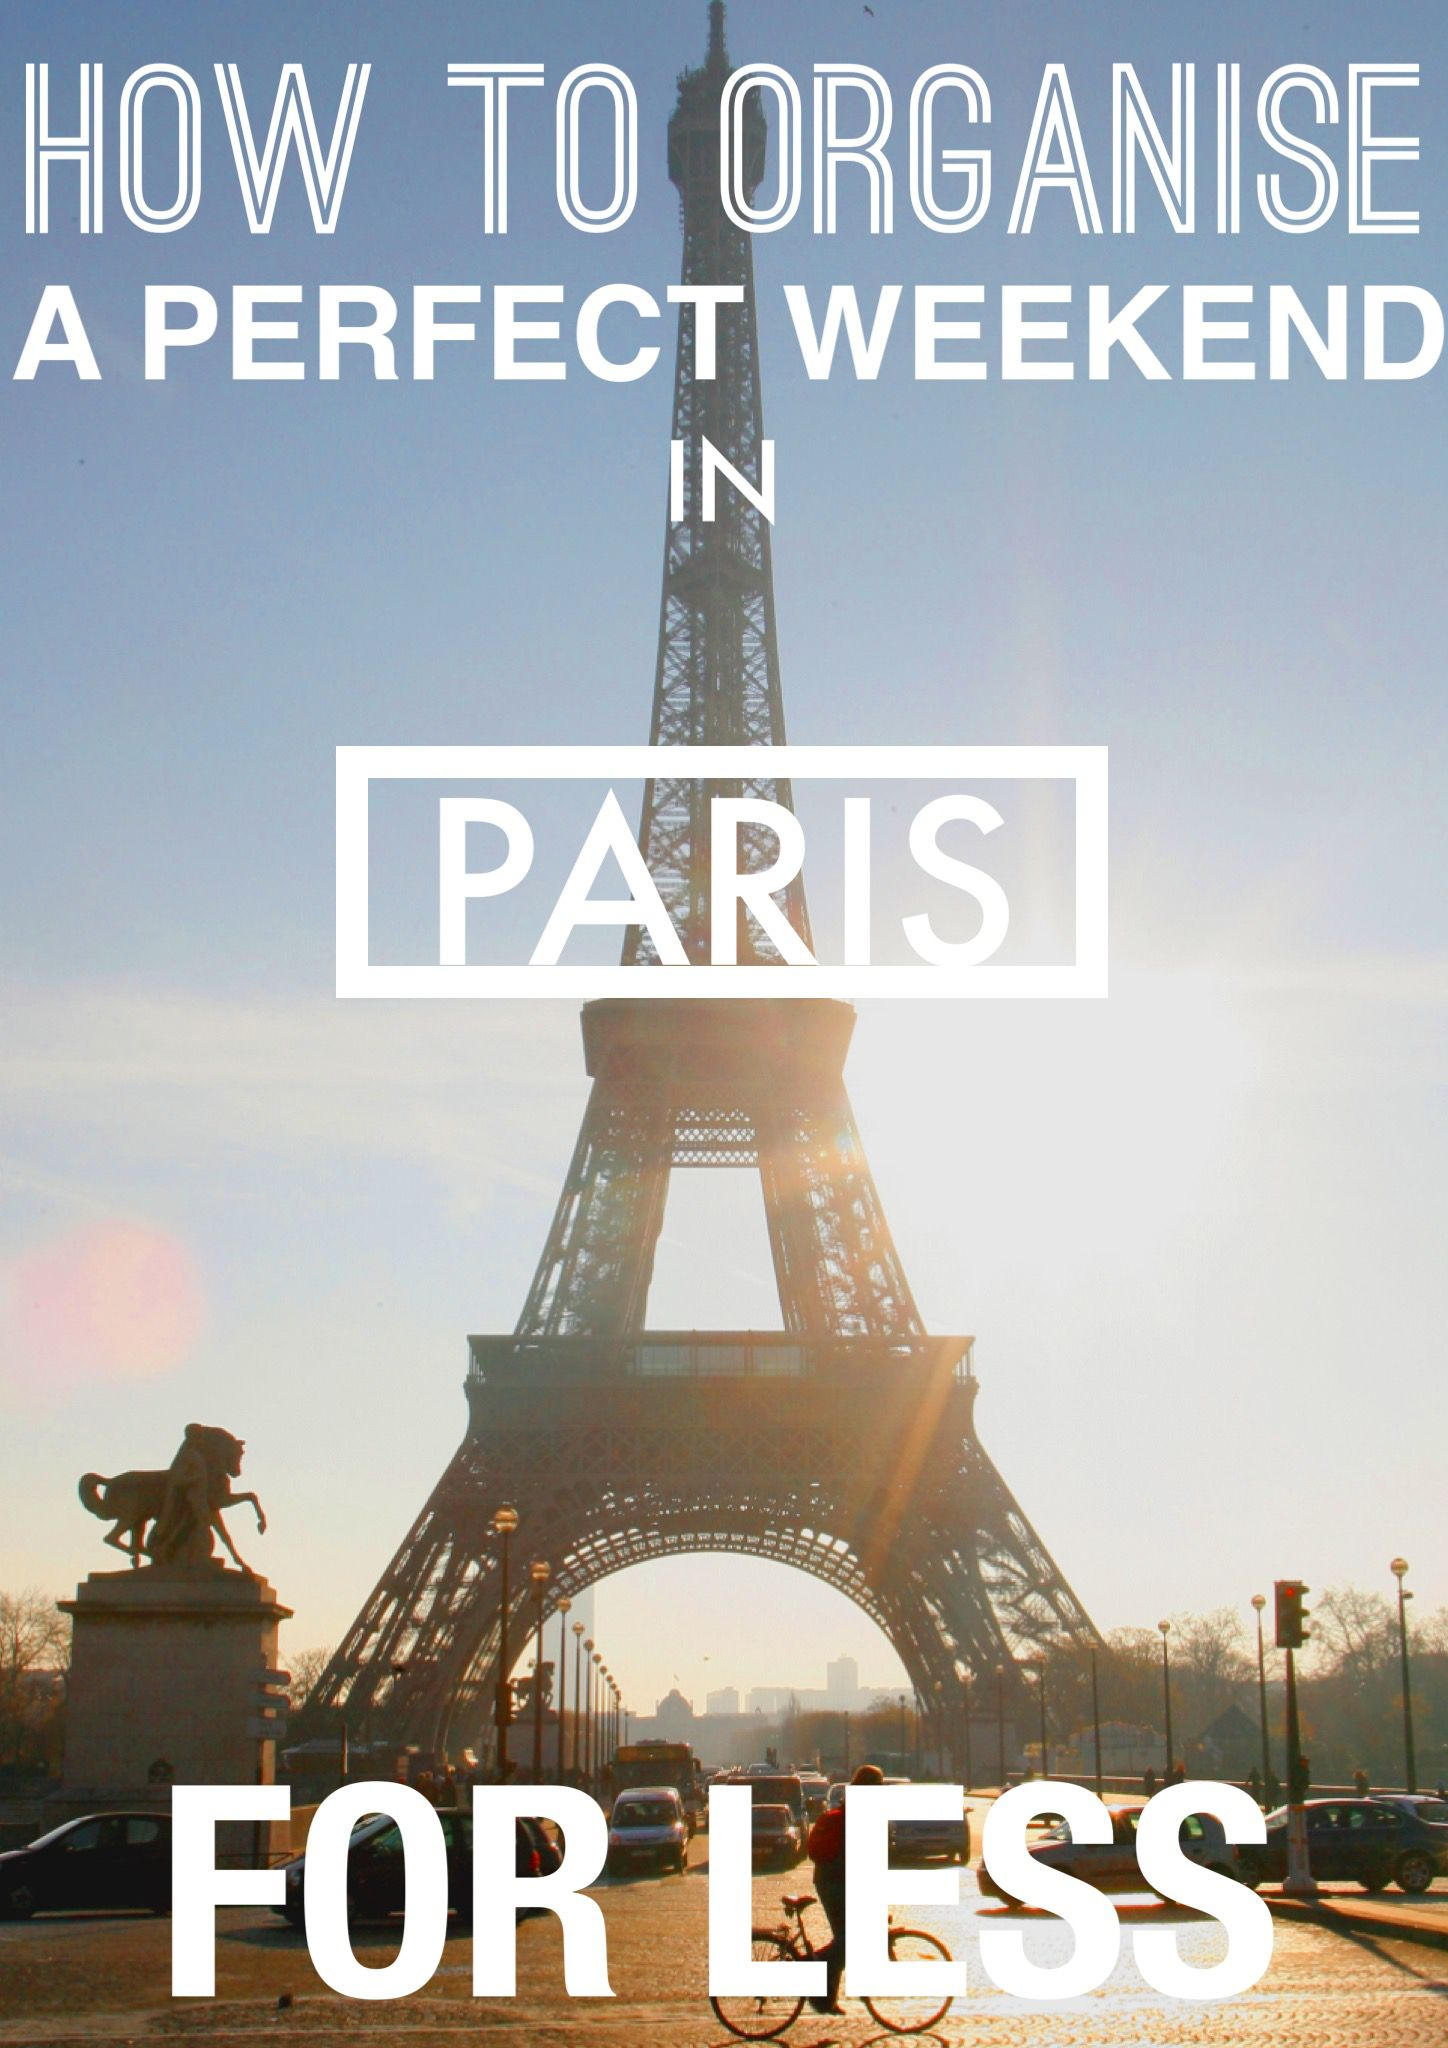 How To Organise A Perfect Weekend In Paris For Less (3)